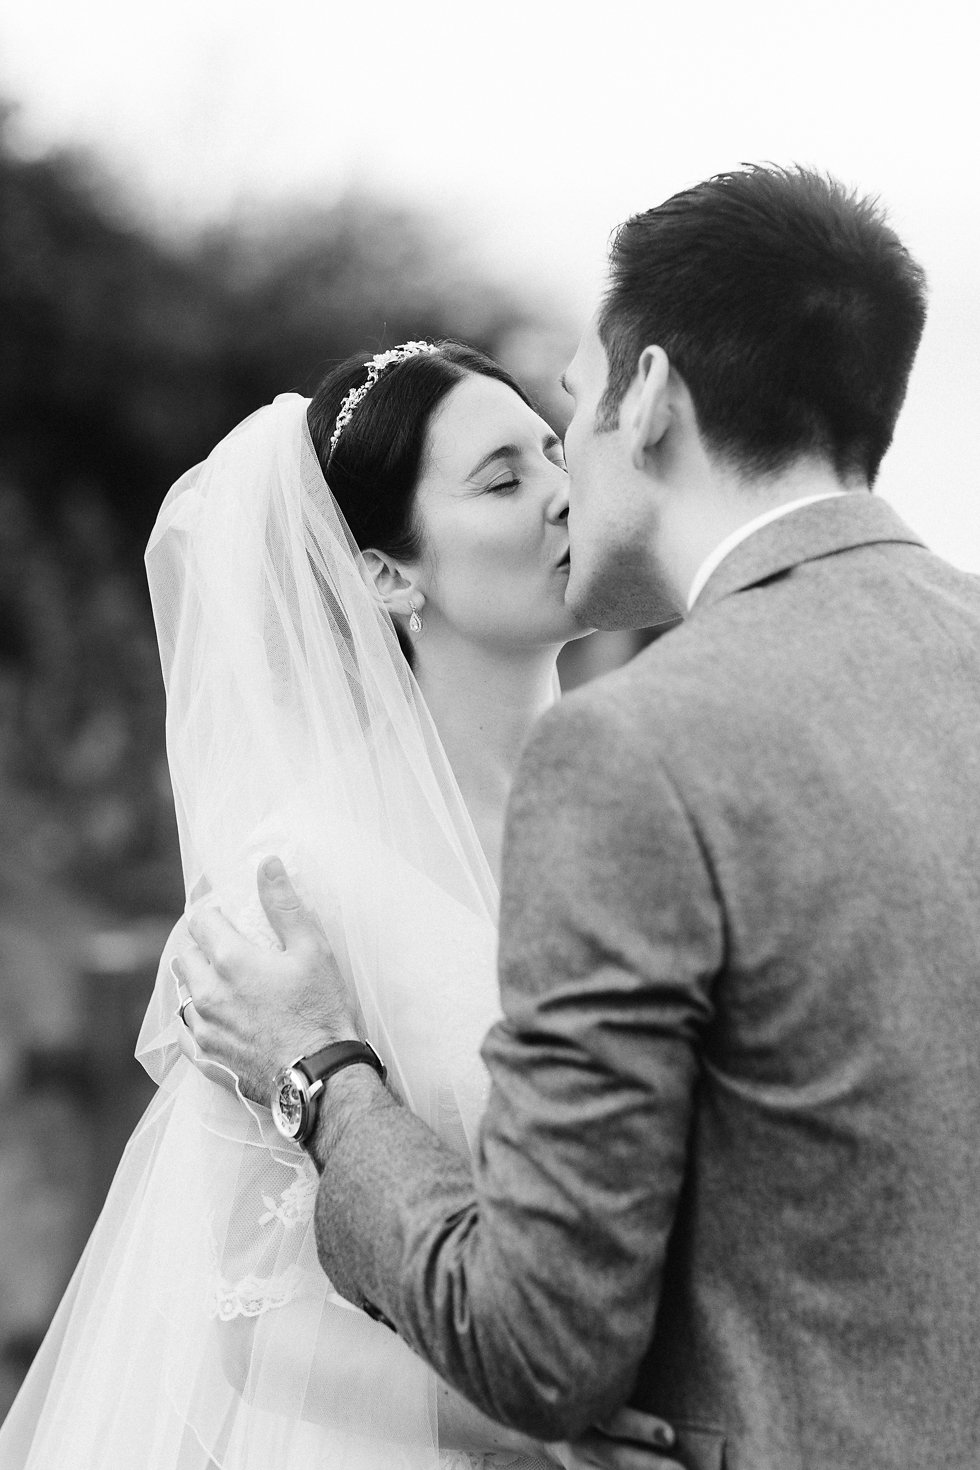 becky_rick_wedding_love_rachelhaytonphotography_lowres-208.jpg